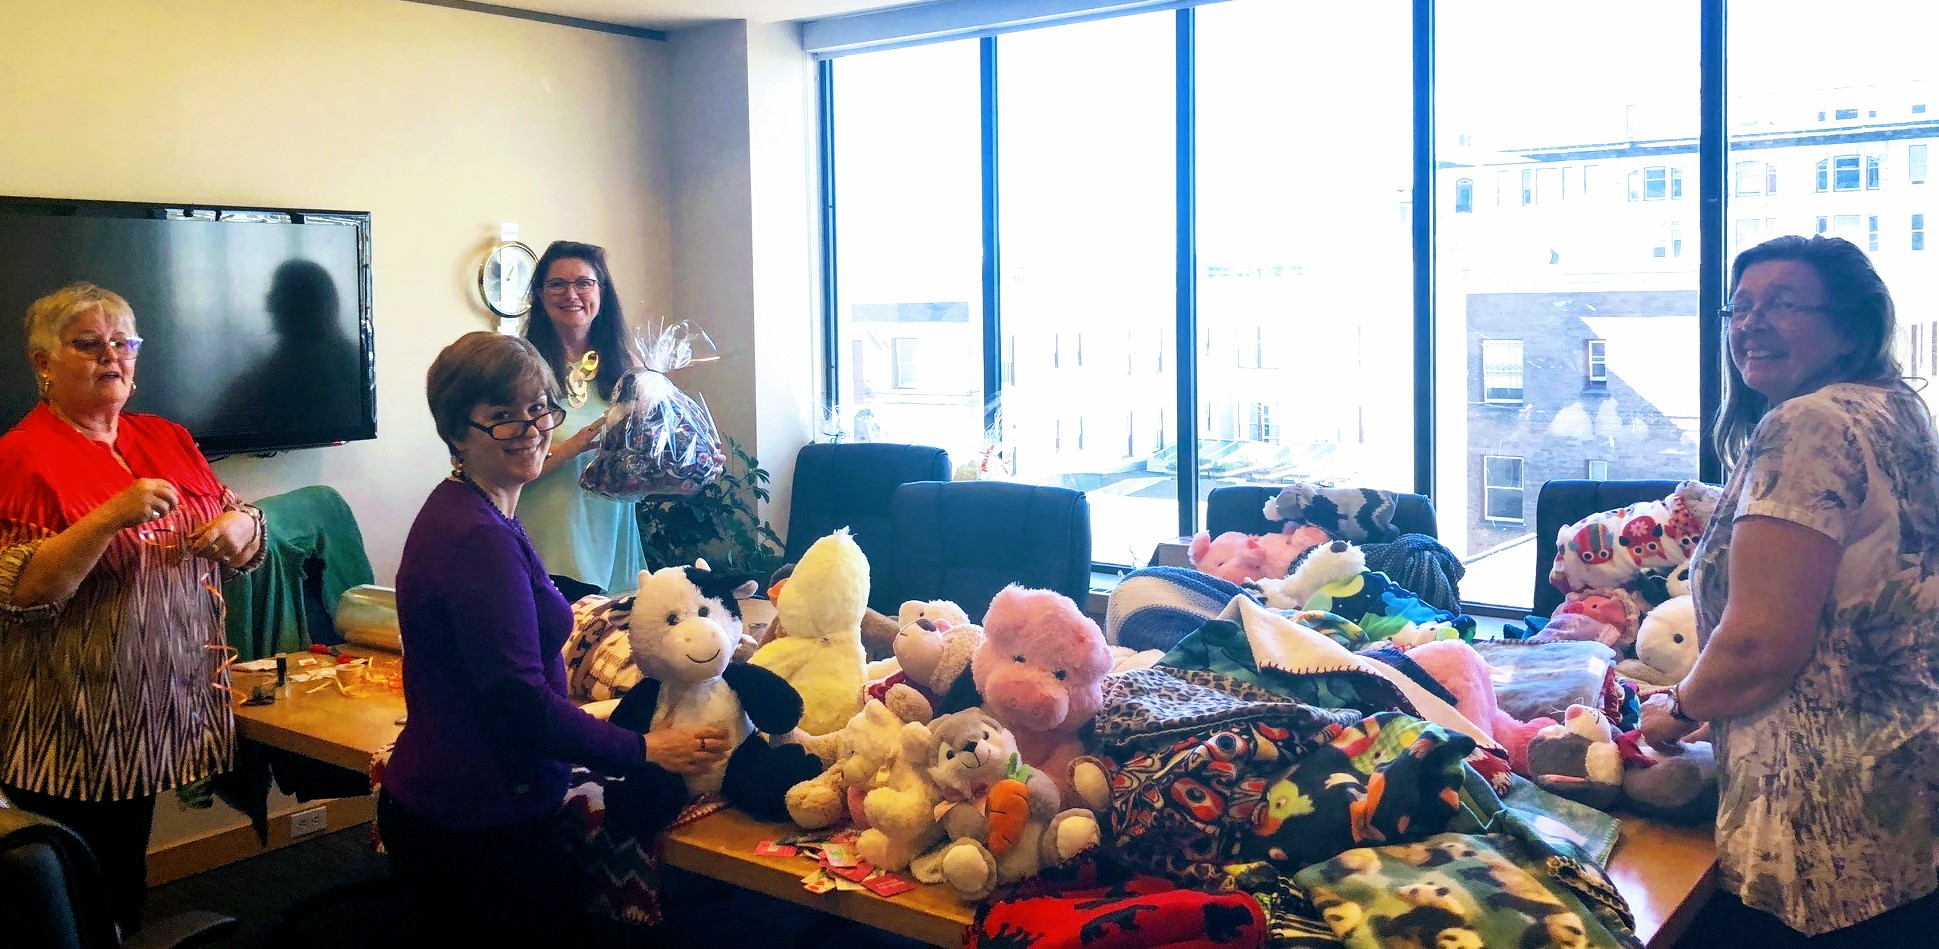 Staff help wrap stuffed animals in the McBOP board room